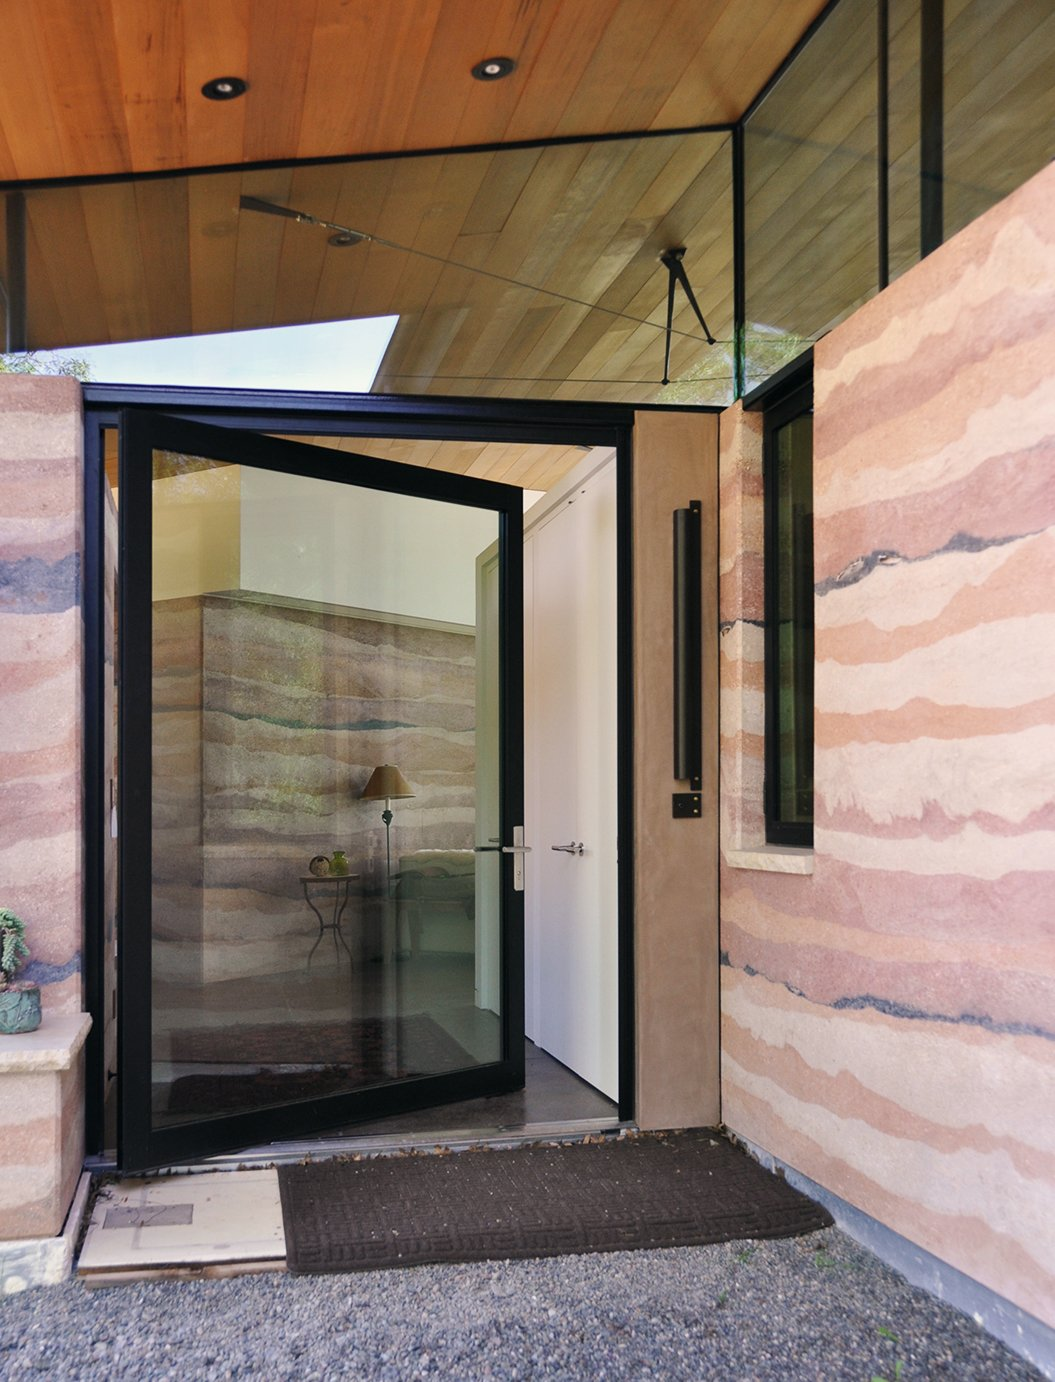 Contractor John Richards built the earthen facade to take on the appearance of sedimentary rock, referencing drawings the residents made to show the range and depth of colors they desired. Geological Formation - Photo 3 of 8